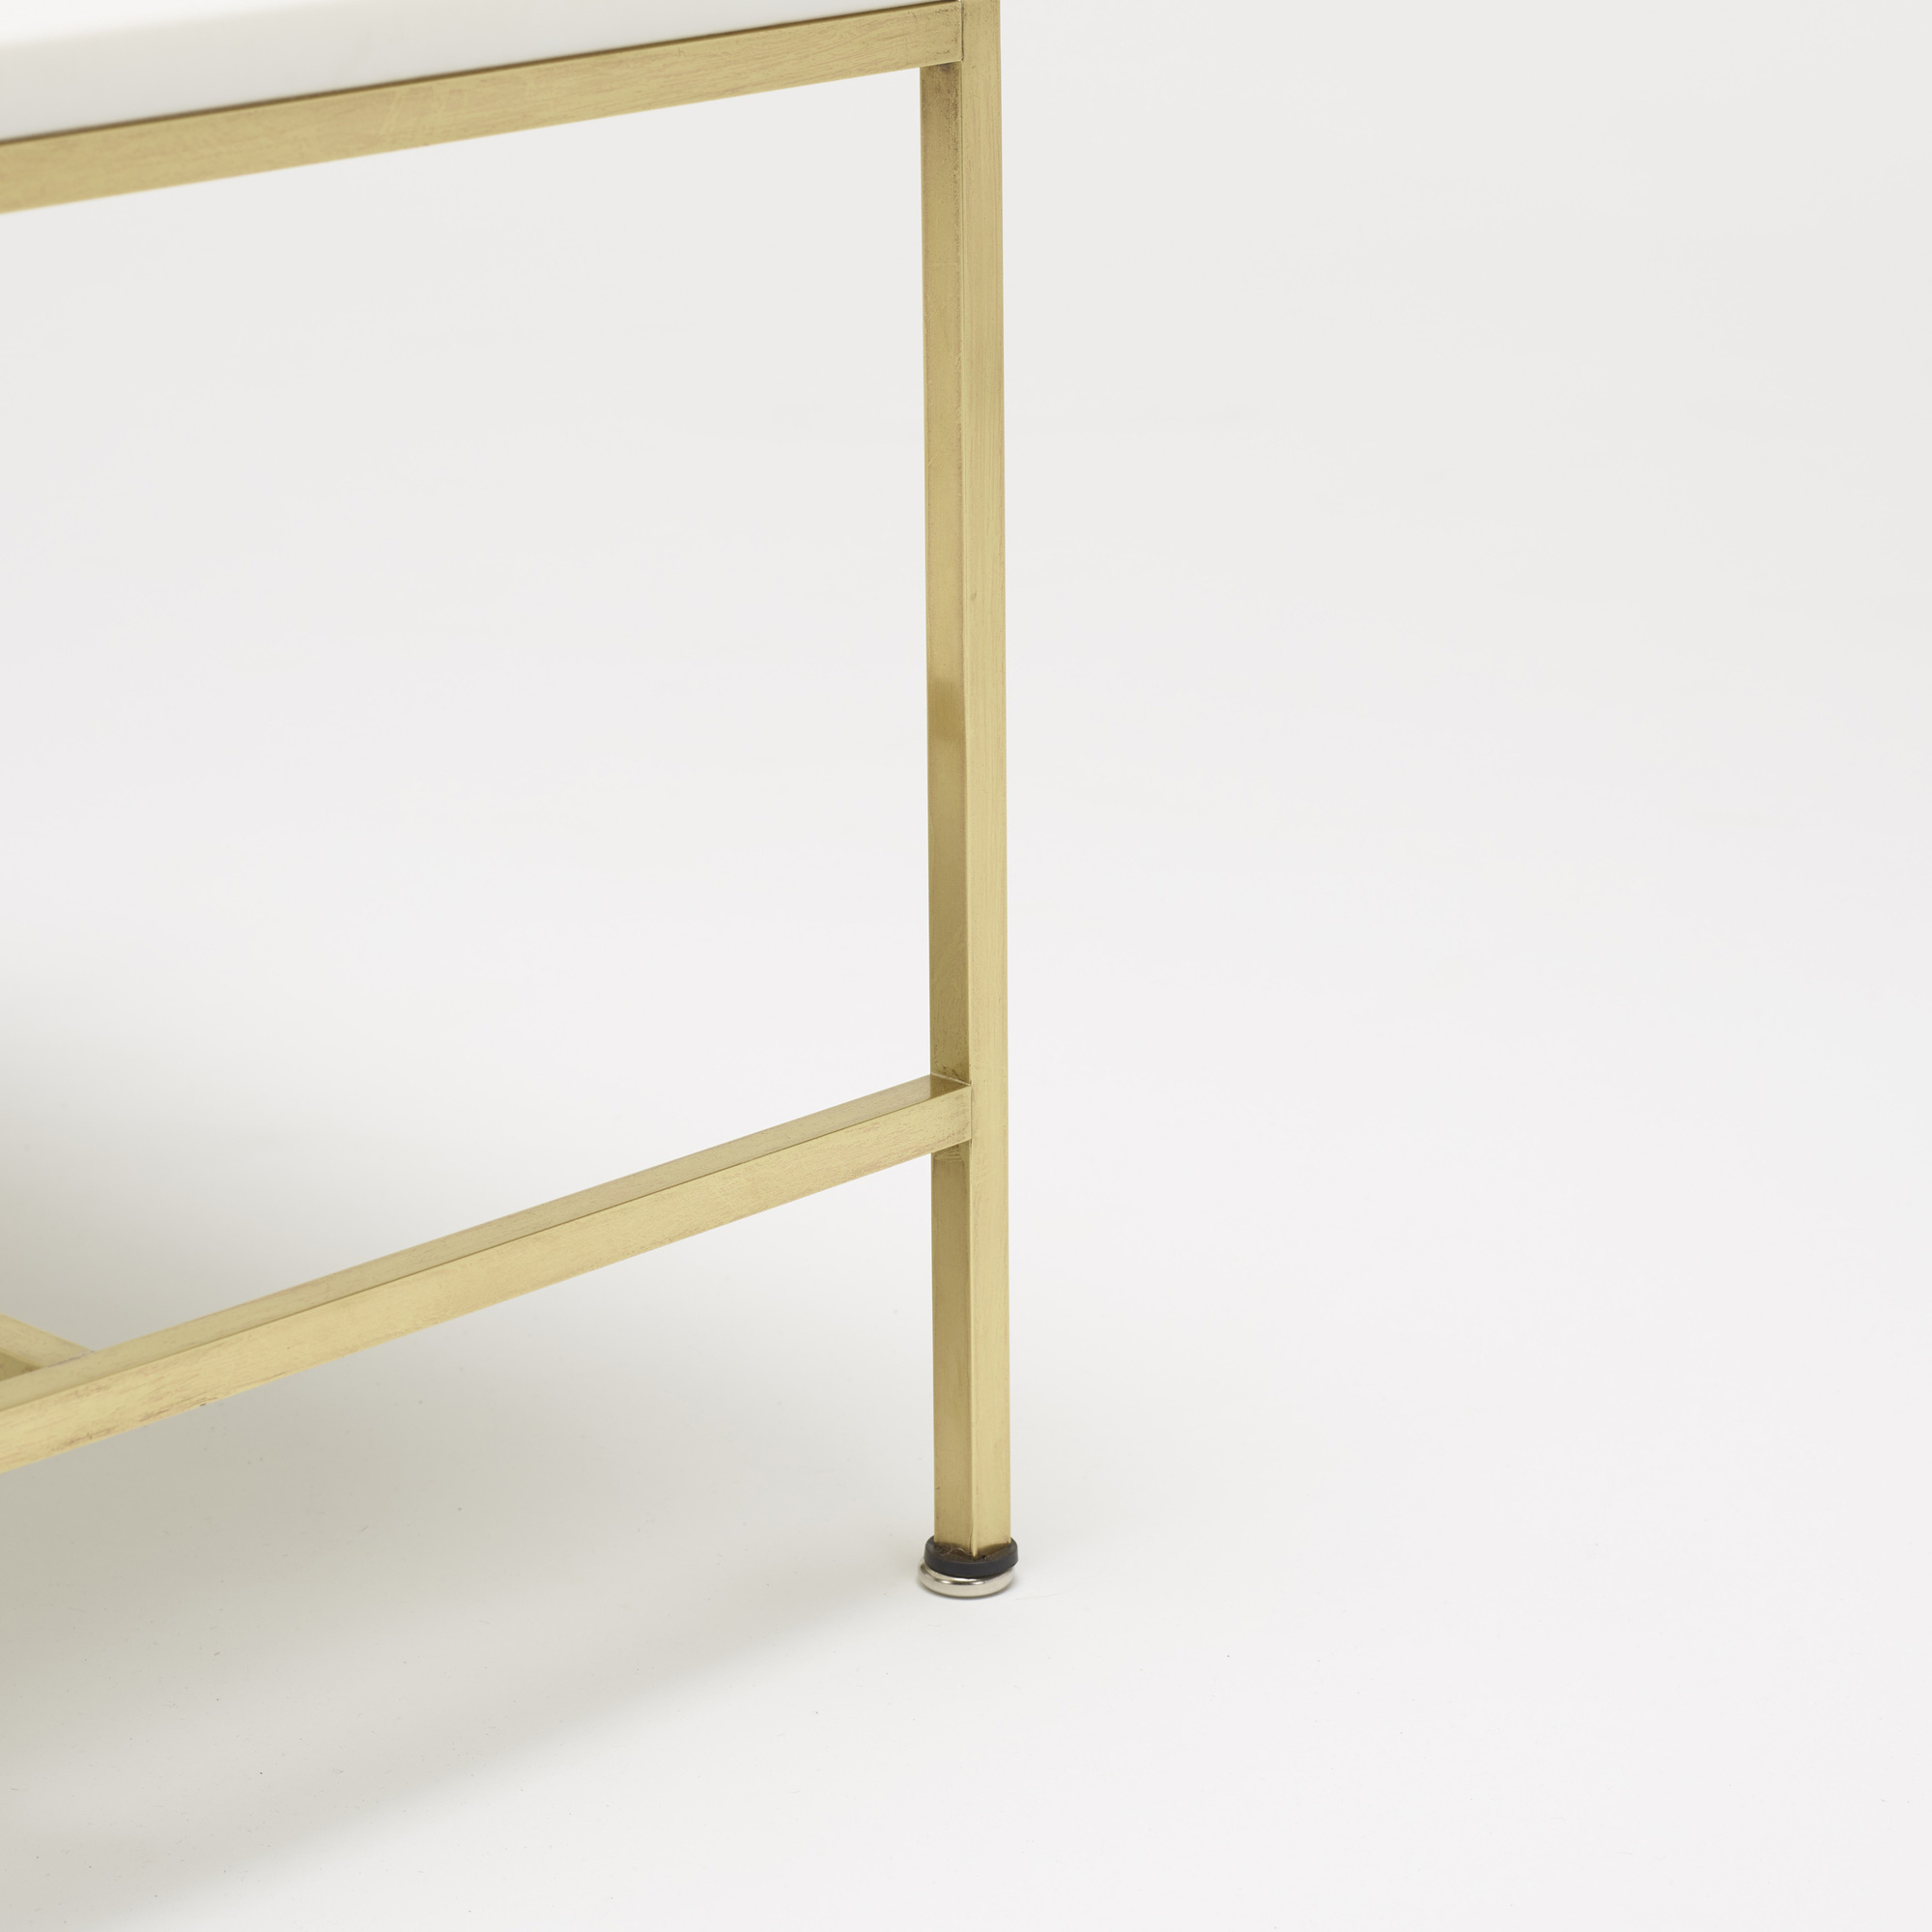 559: Paul McCobb / occasional table (2 of 2)